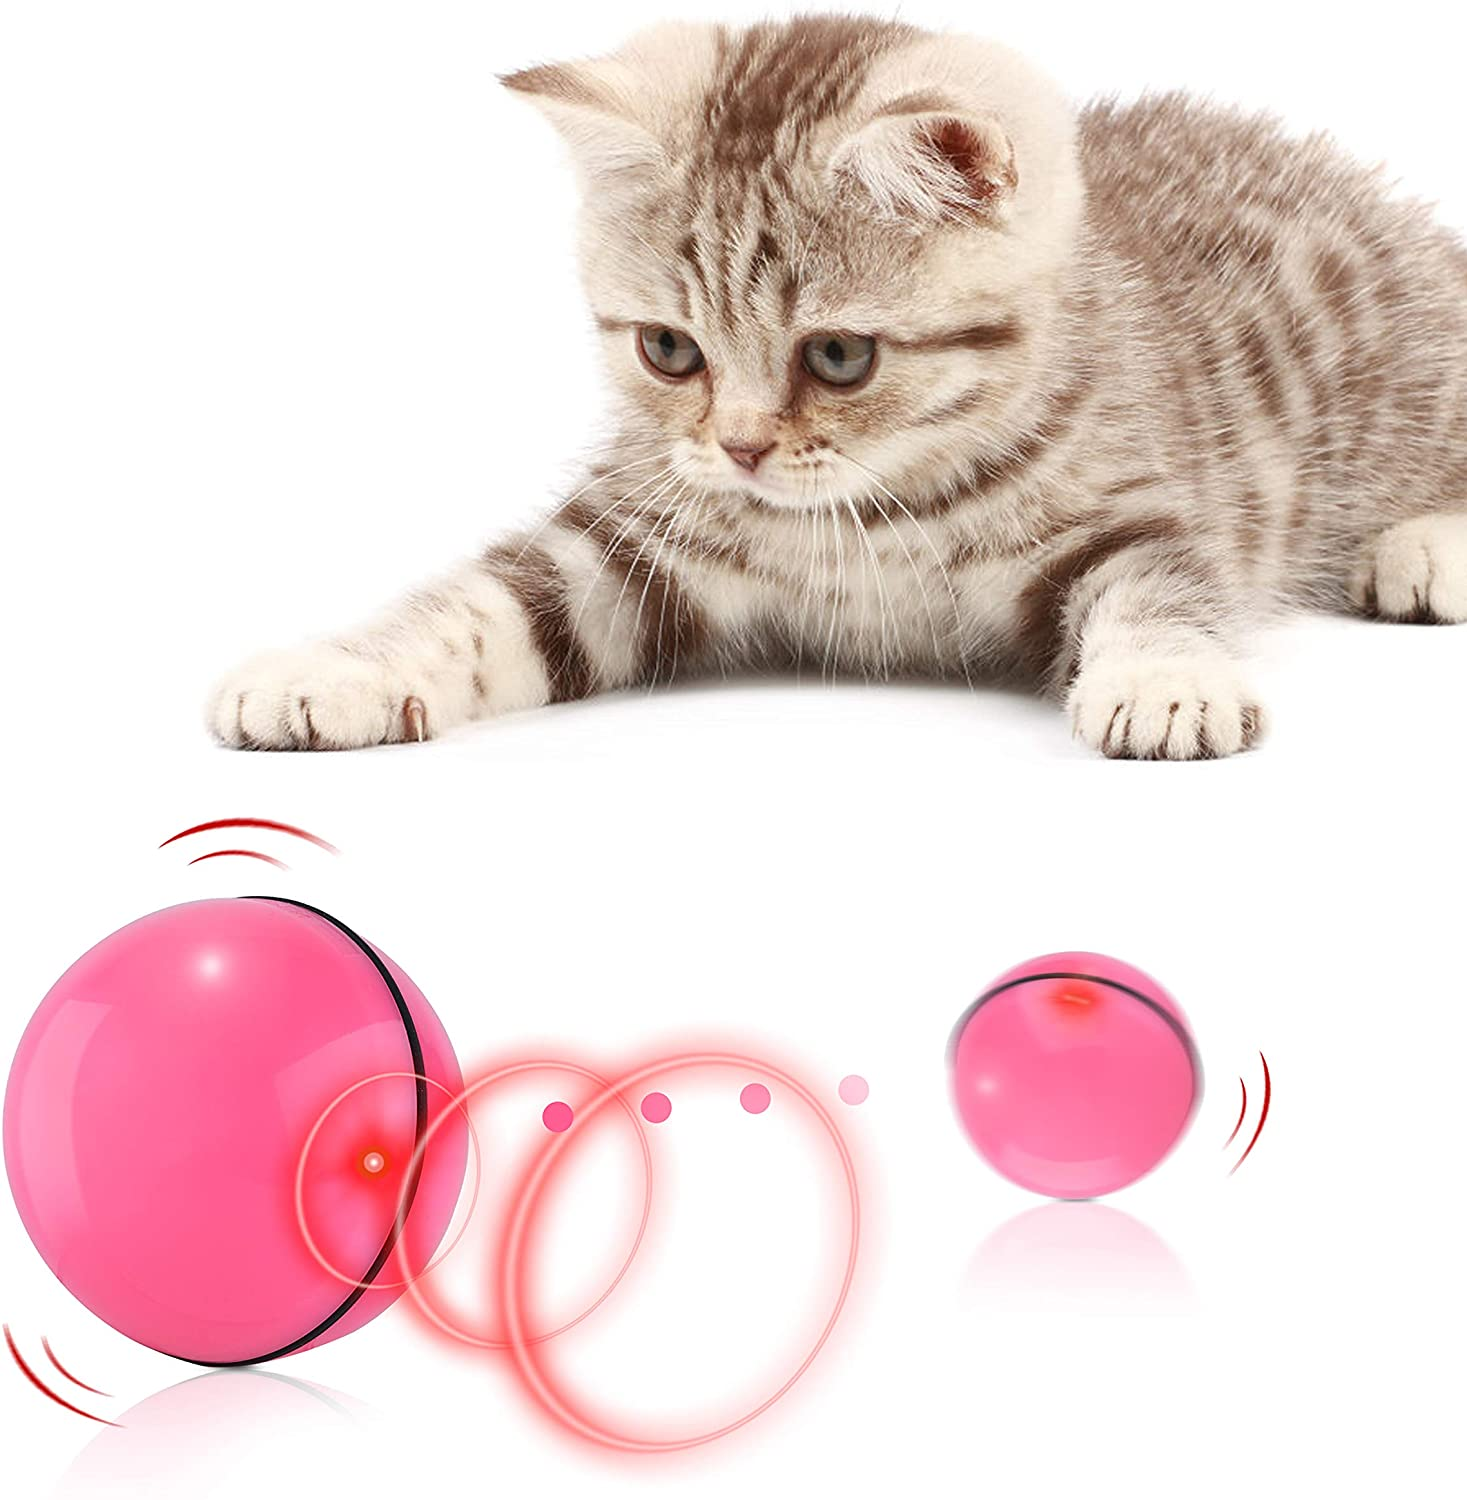 Cat is plating with motion activated interactive cat ball